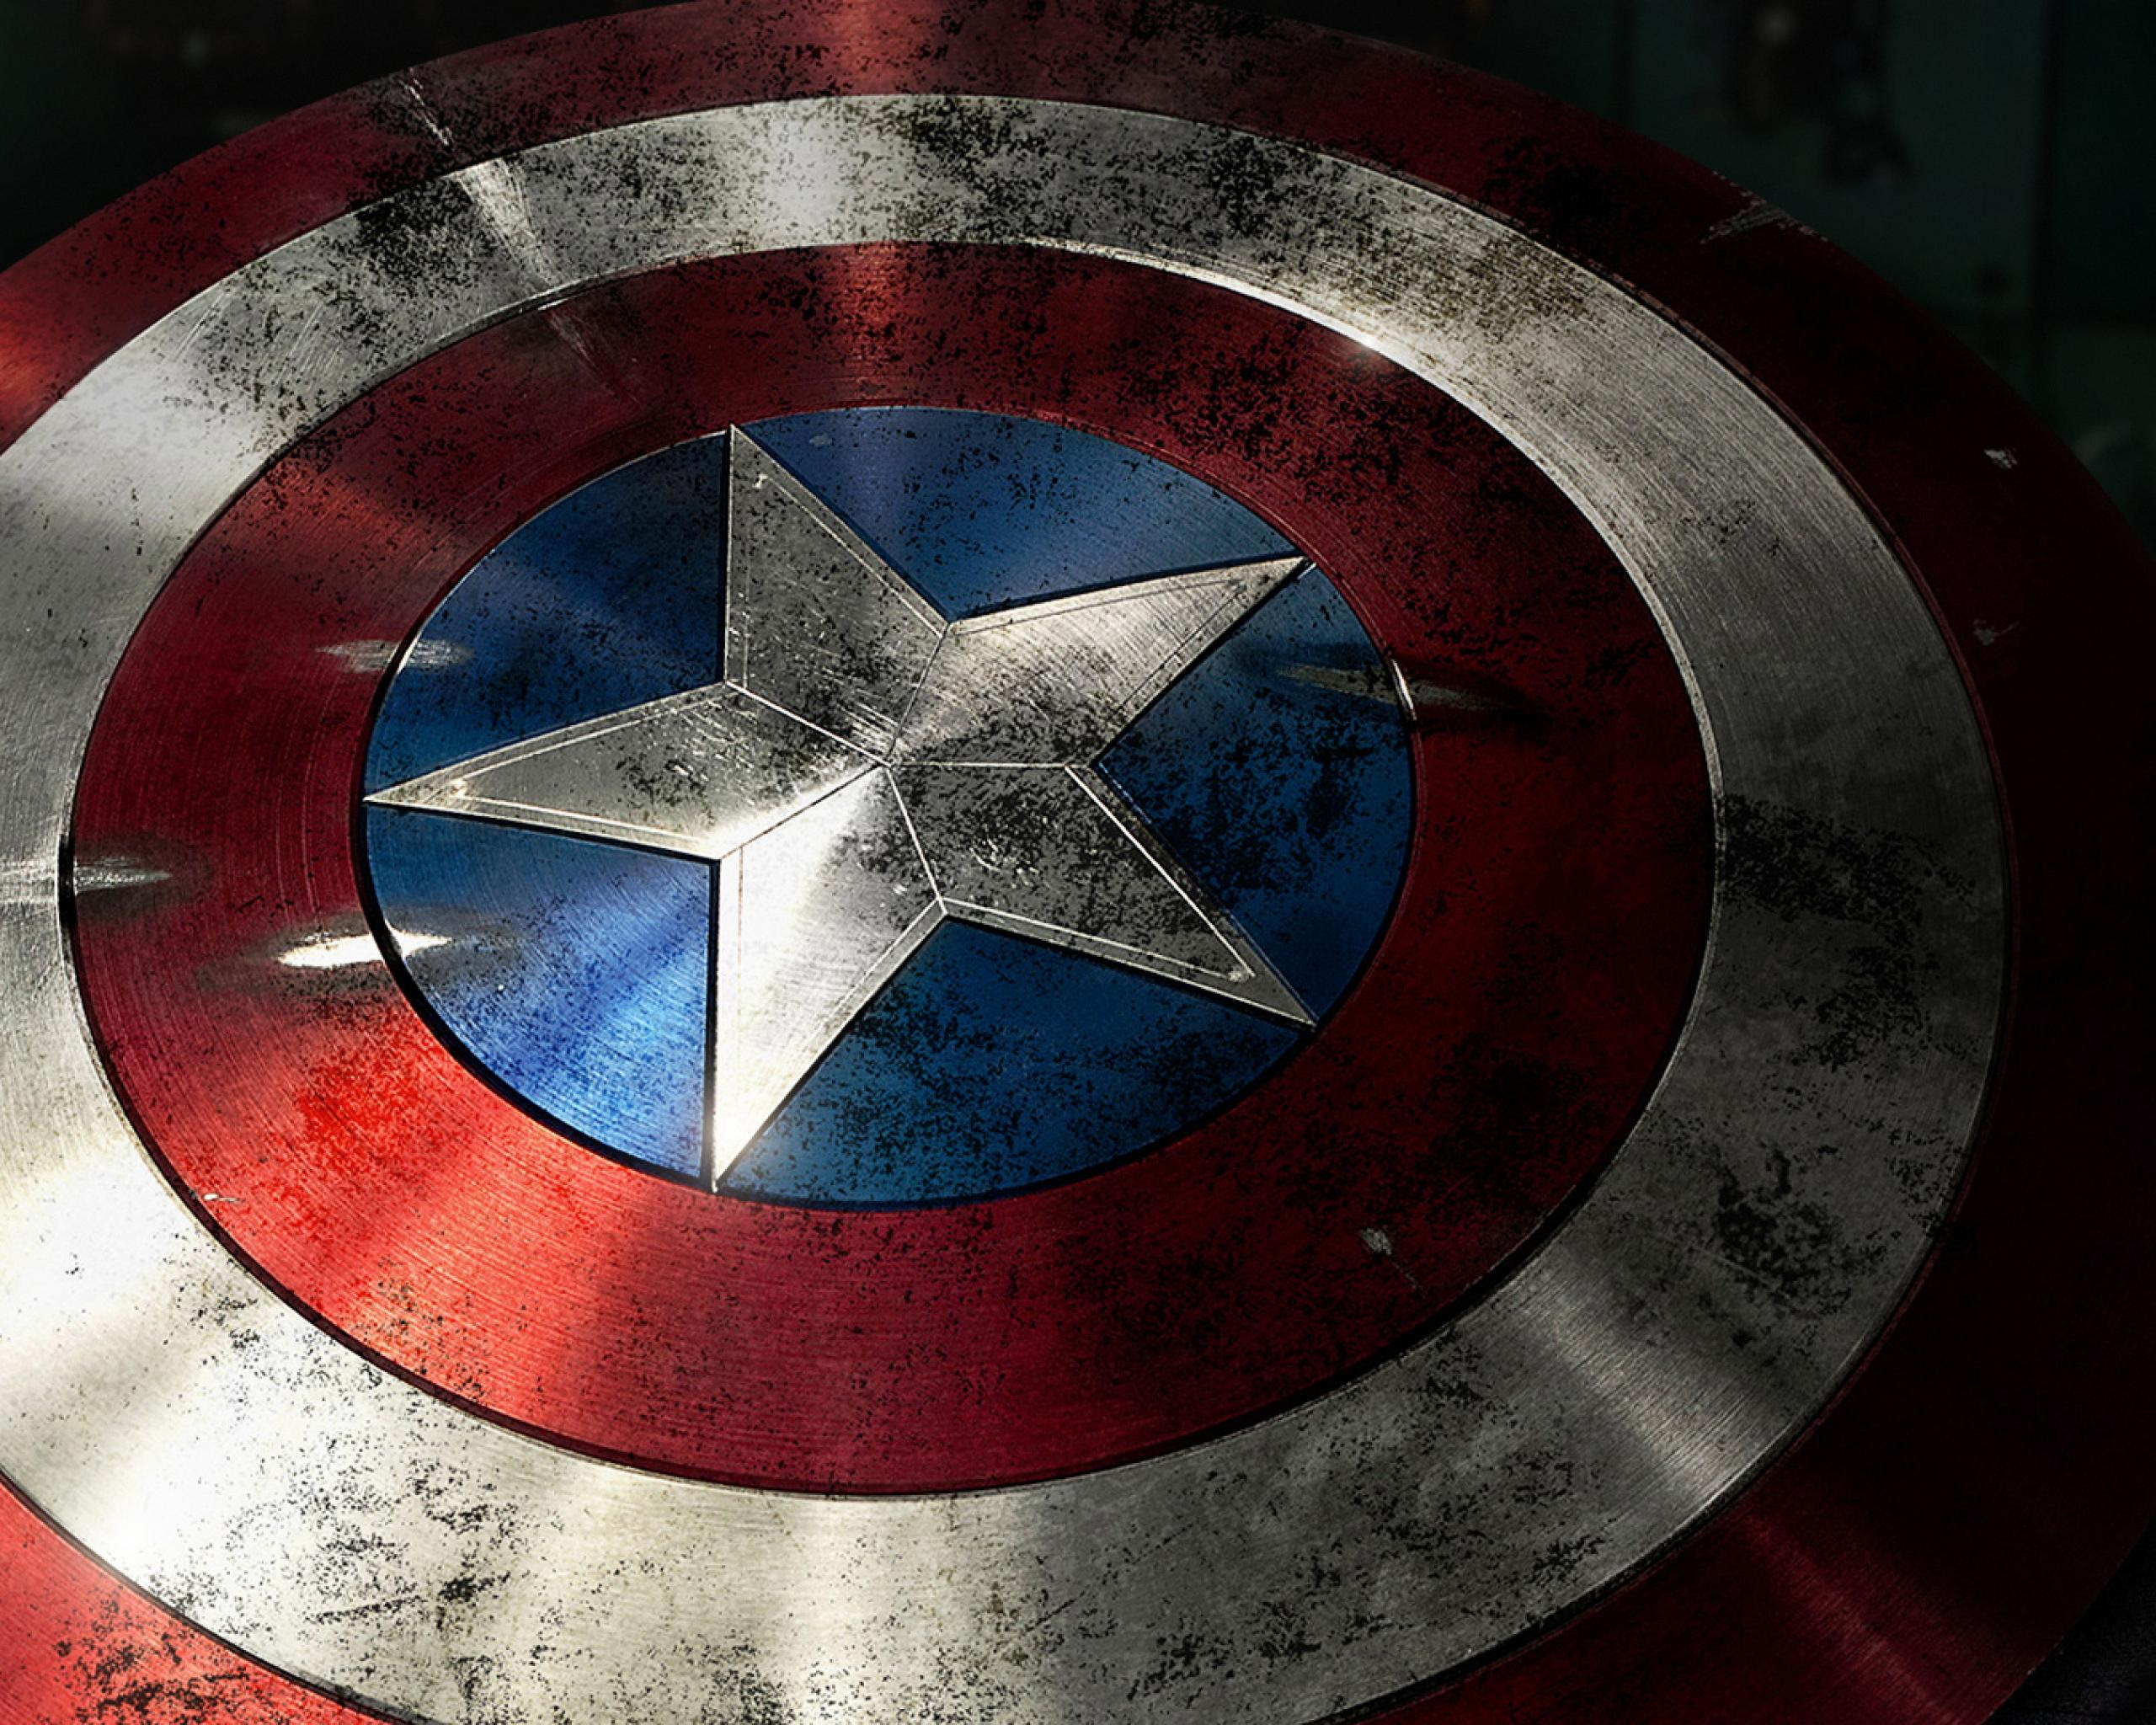 http://img3.wikia.nocookie.net/__cb20120505075640/marvelcinematicuniverse/images/8/86/Shield-Captain-America-Movie.jpg